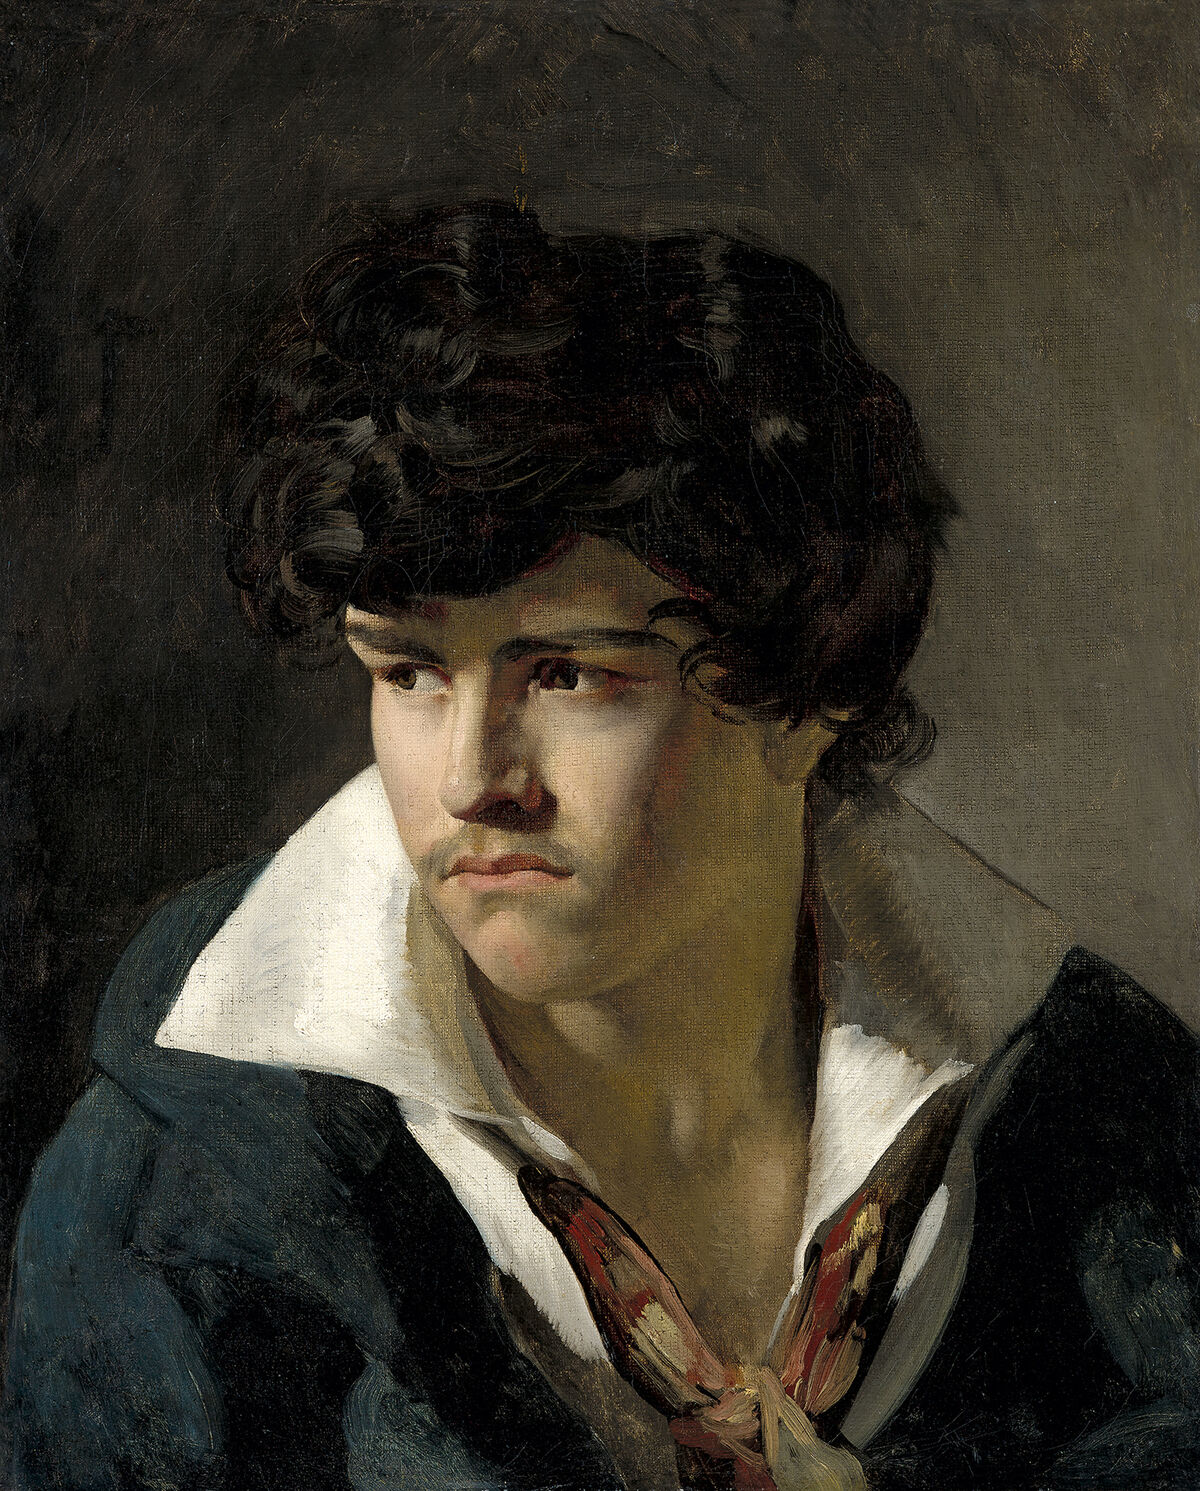 Théodore Géricault, Portrait of a young man with an open collar, c. 1817. Image courtesy of Jean-Luc Baroni Ltd.